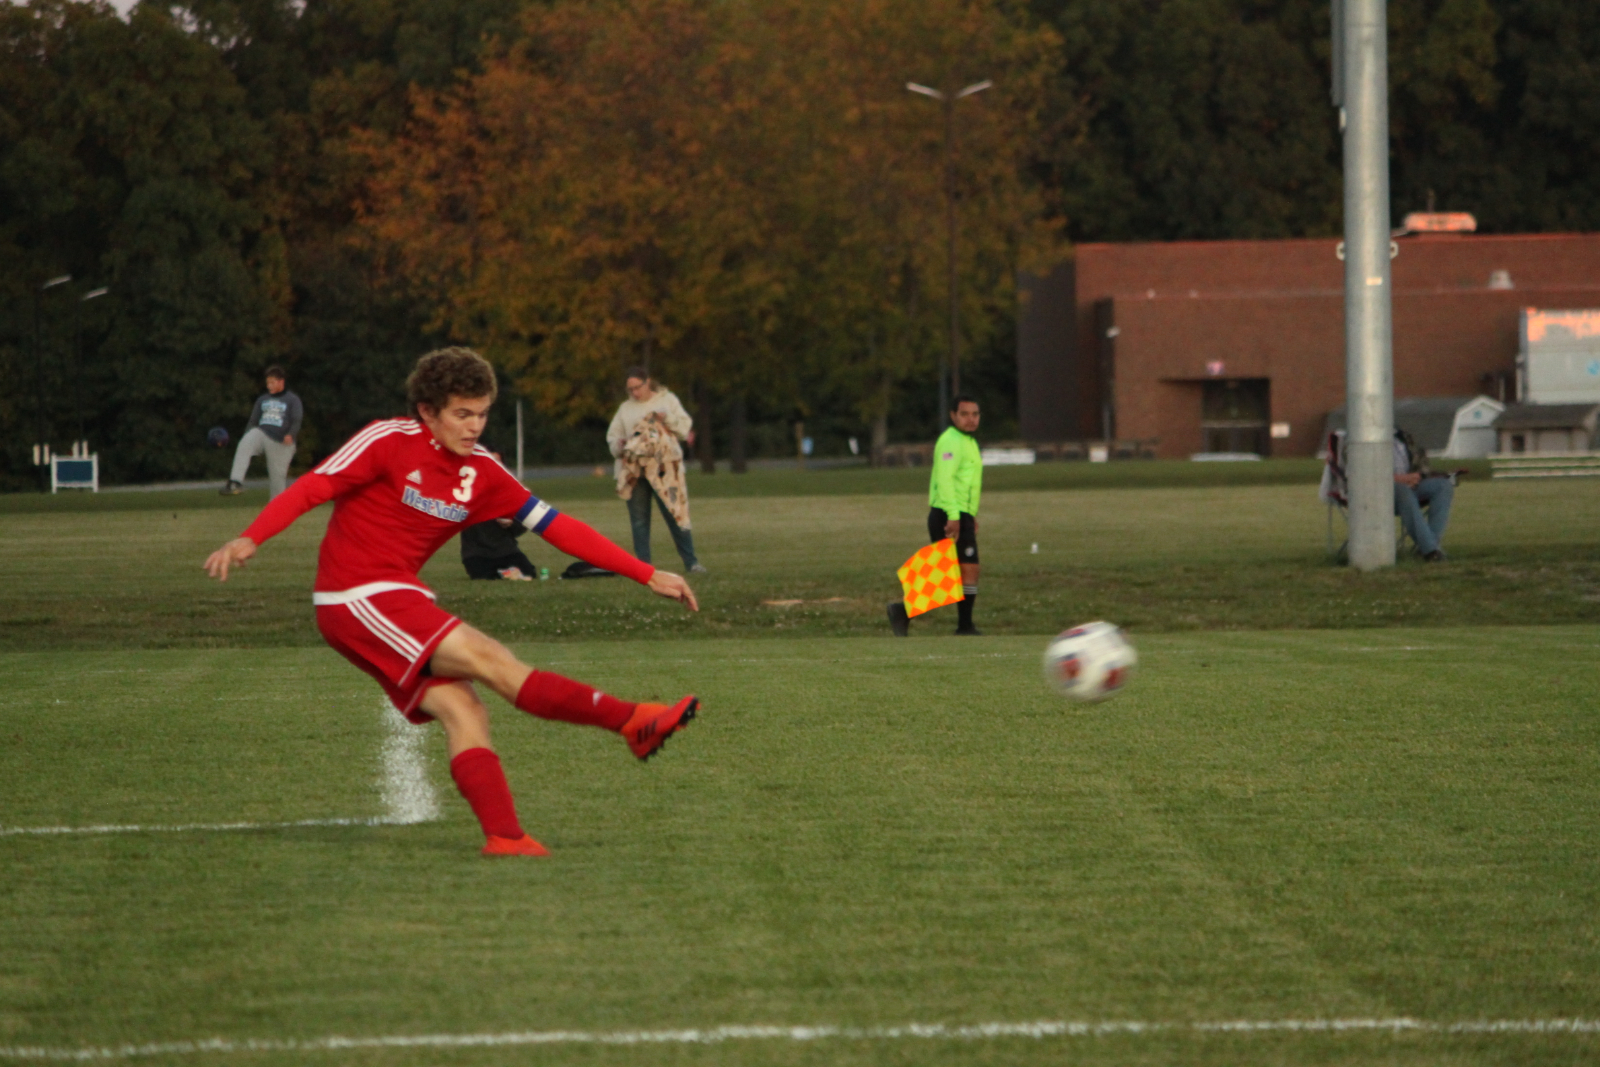 Boys Soccer WN vs. Wawasee (Shaw Photography)